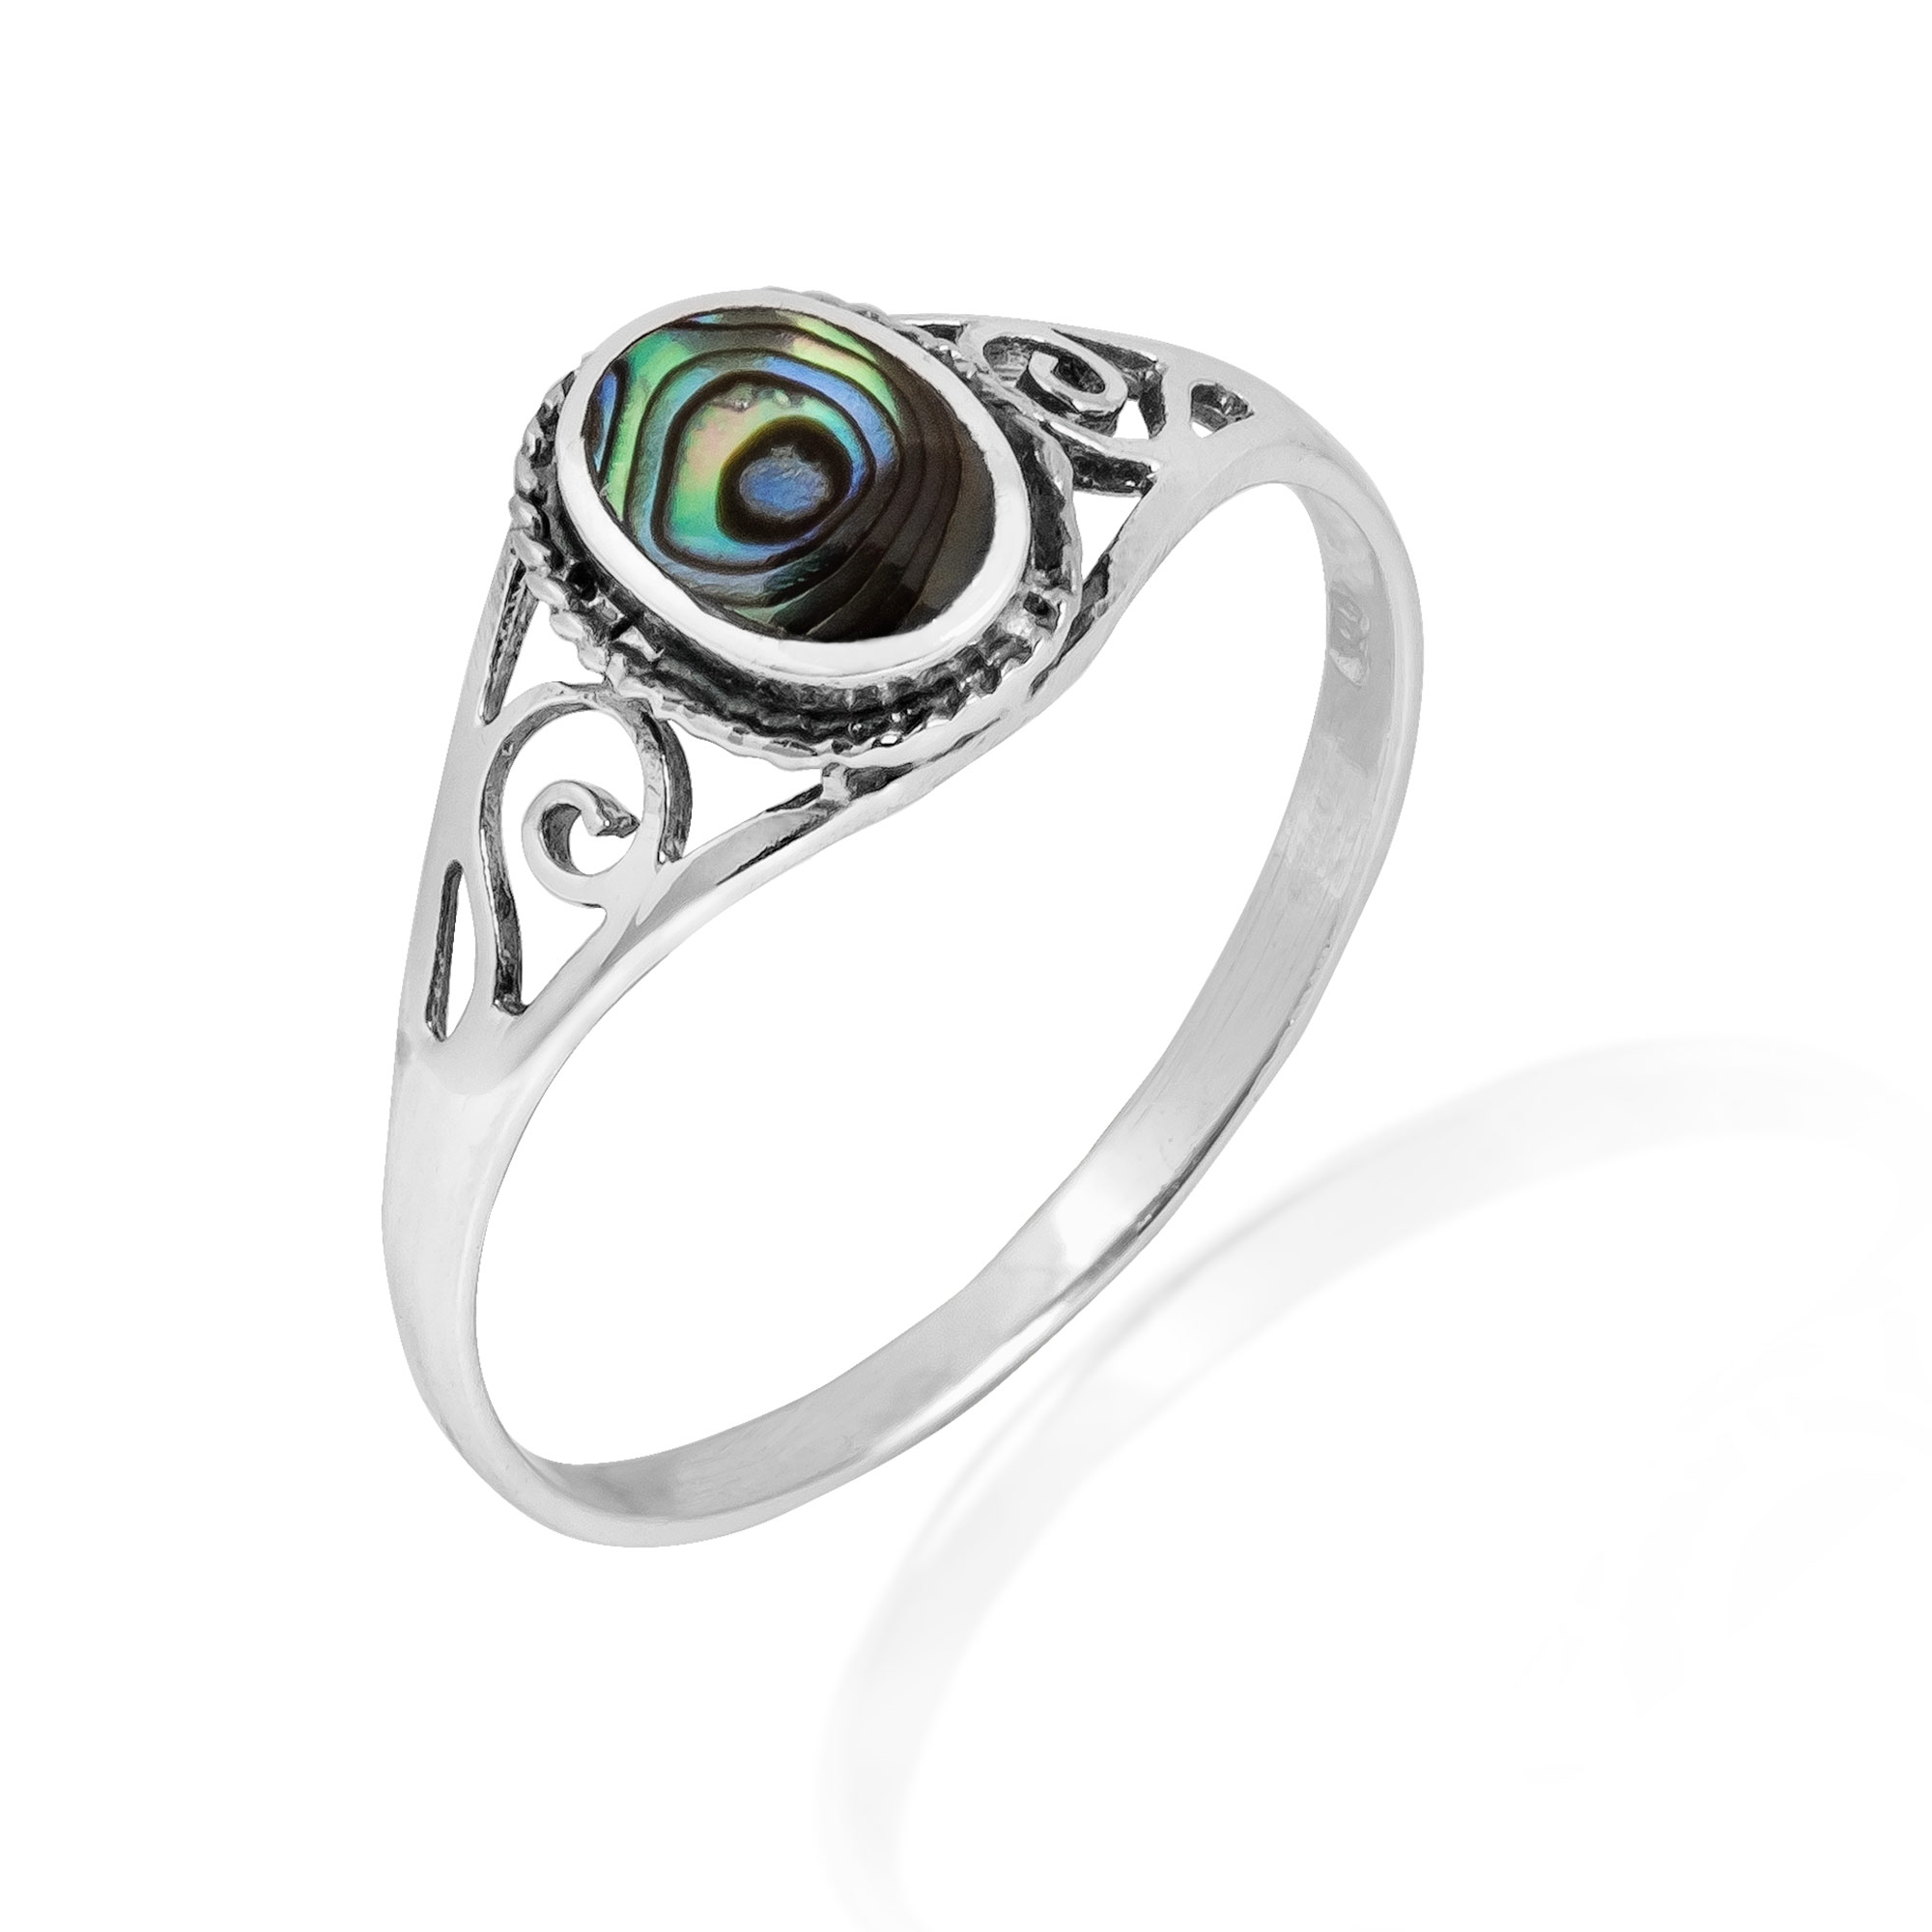 handmade sterling silver com jewellery abalone cateye engagement refined page rings maylijewels